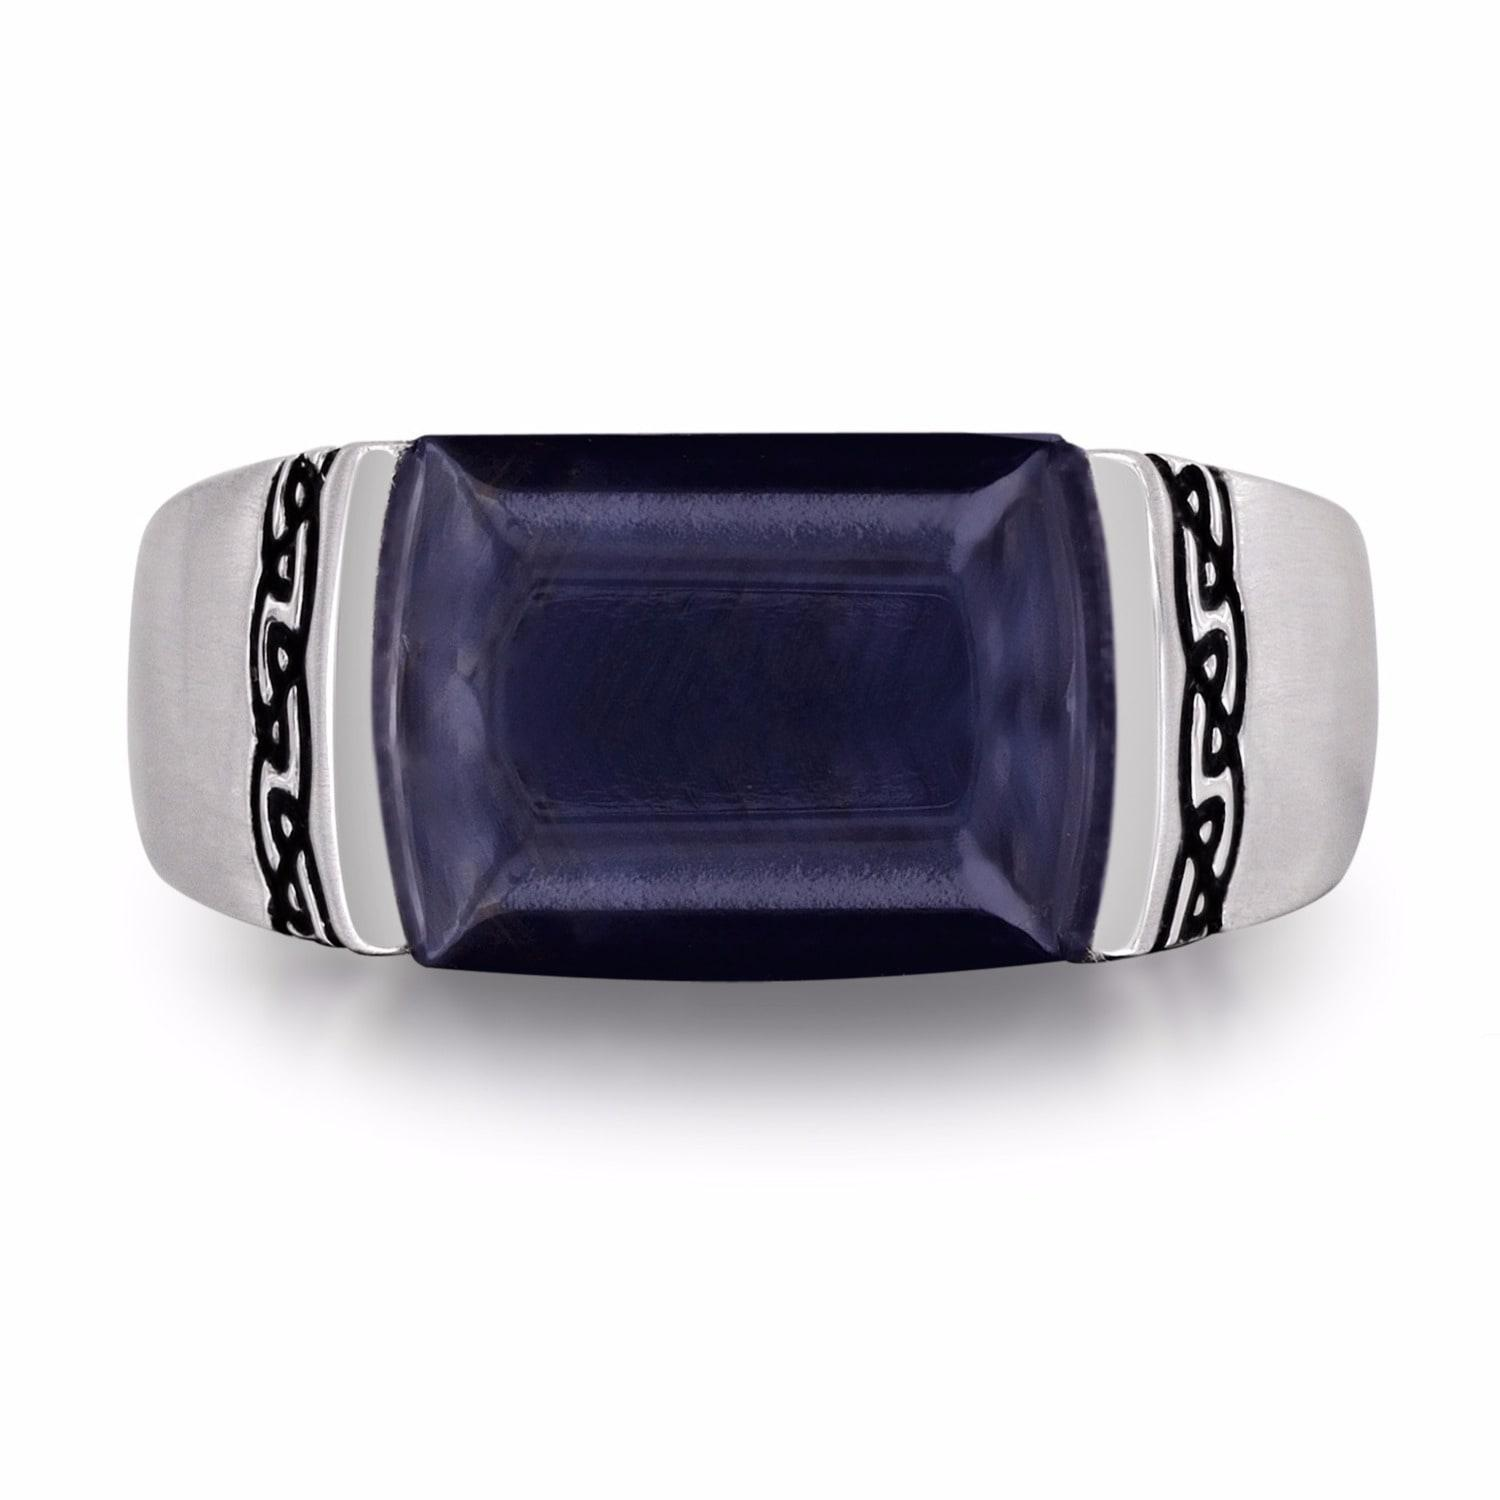 yurman lyst gallery rings david normal stone silverblue product jewelry with in signet silver blue exotic ring pietersite